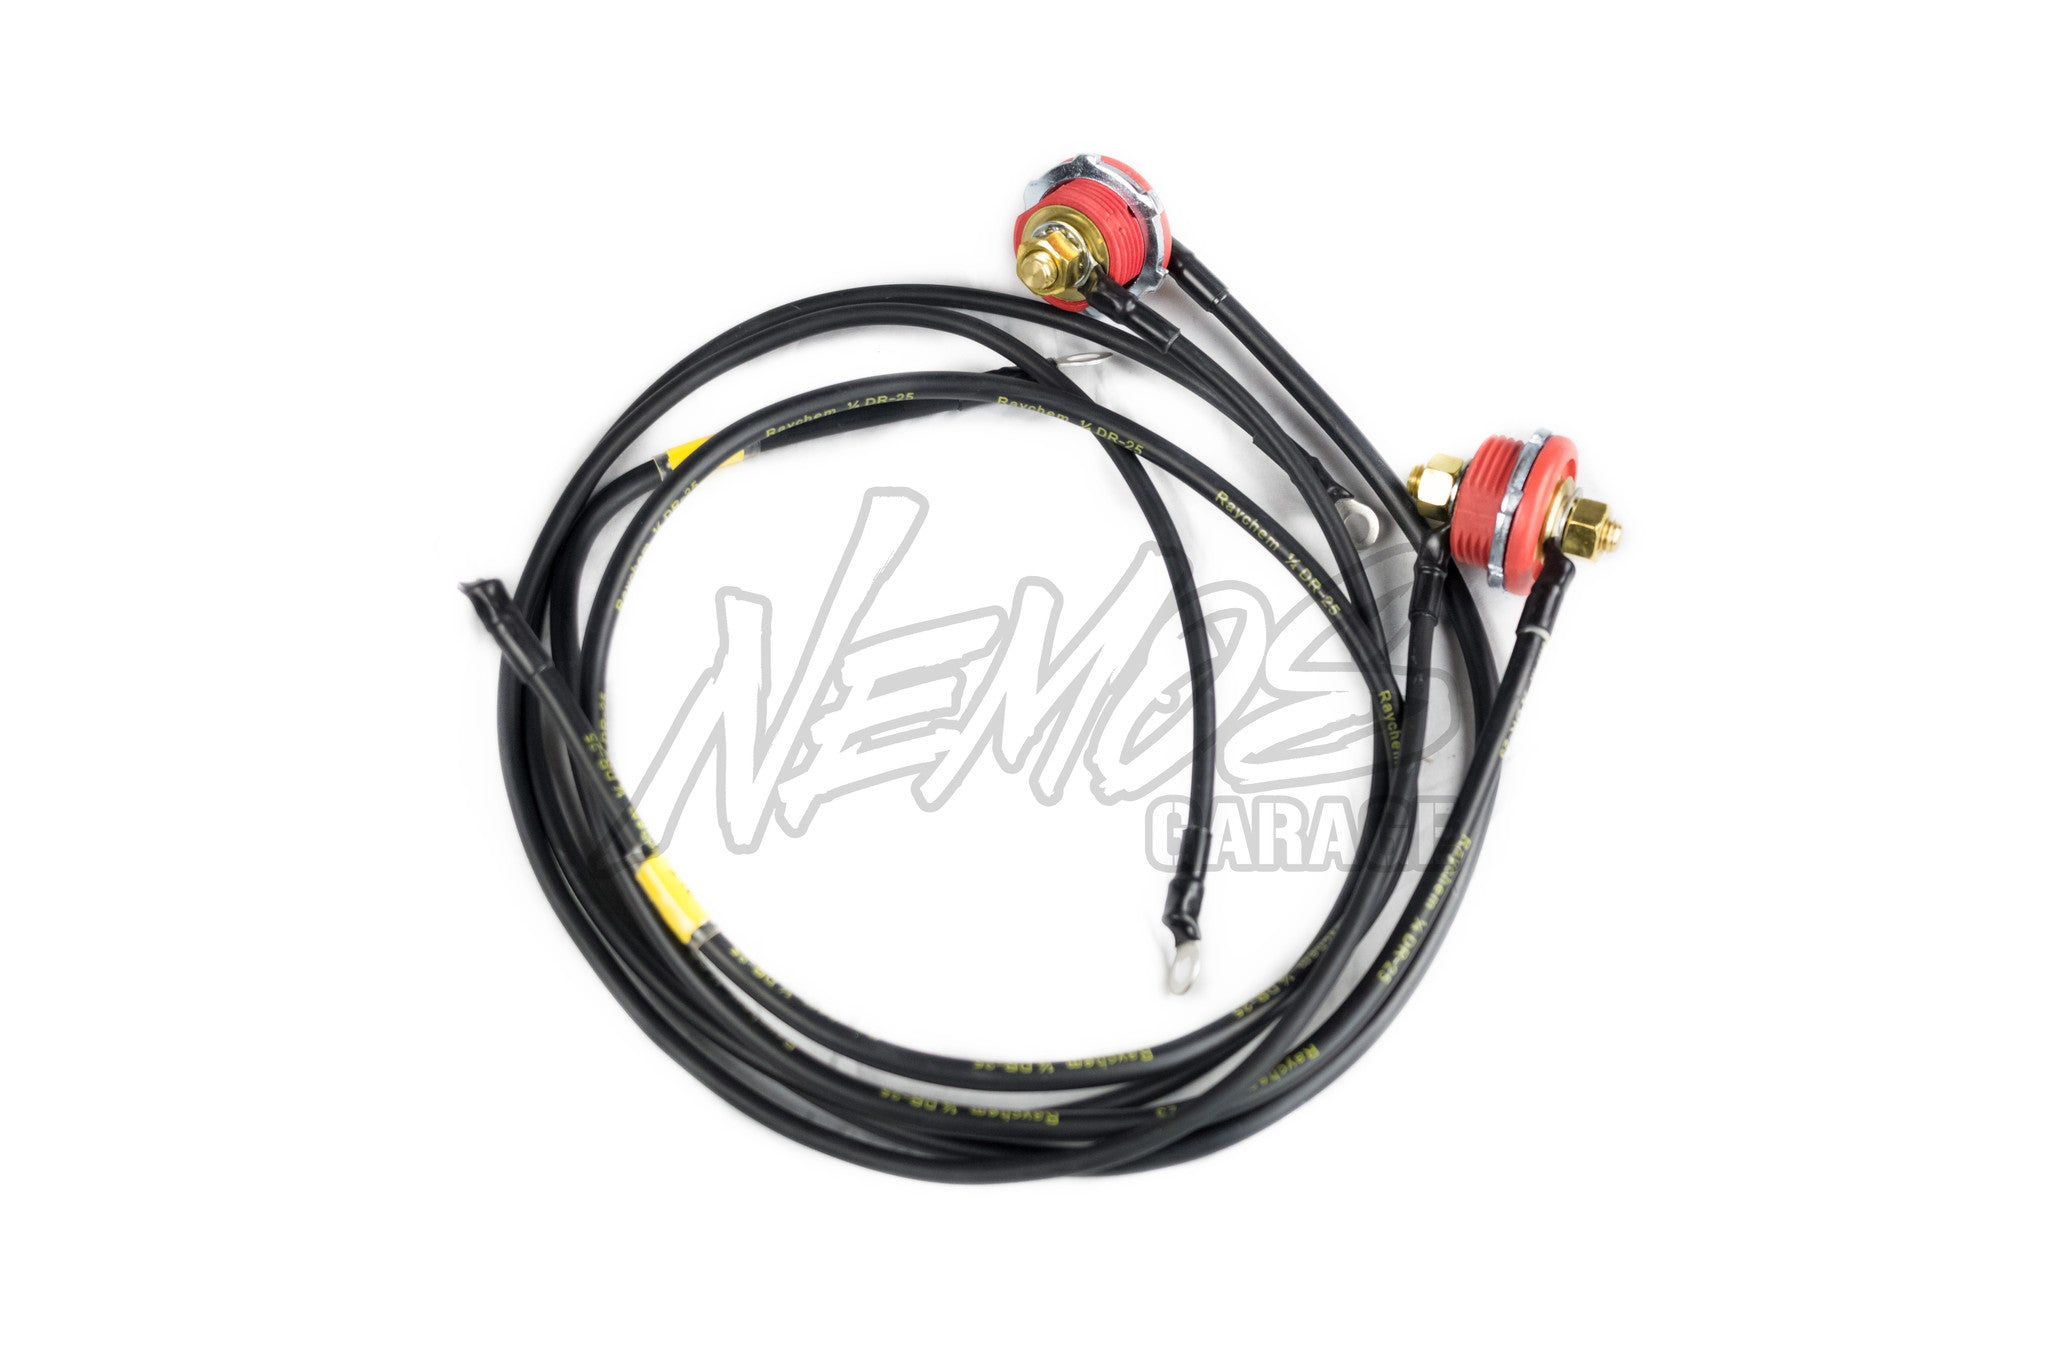 IMG_7565 Edit Edit?v=1485485152 rywire d & b series separated charge harness nemos garage com b series engine harness at mr168.co